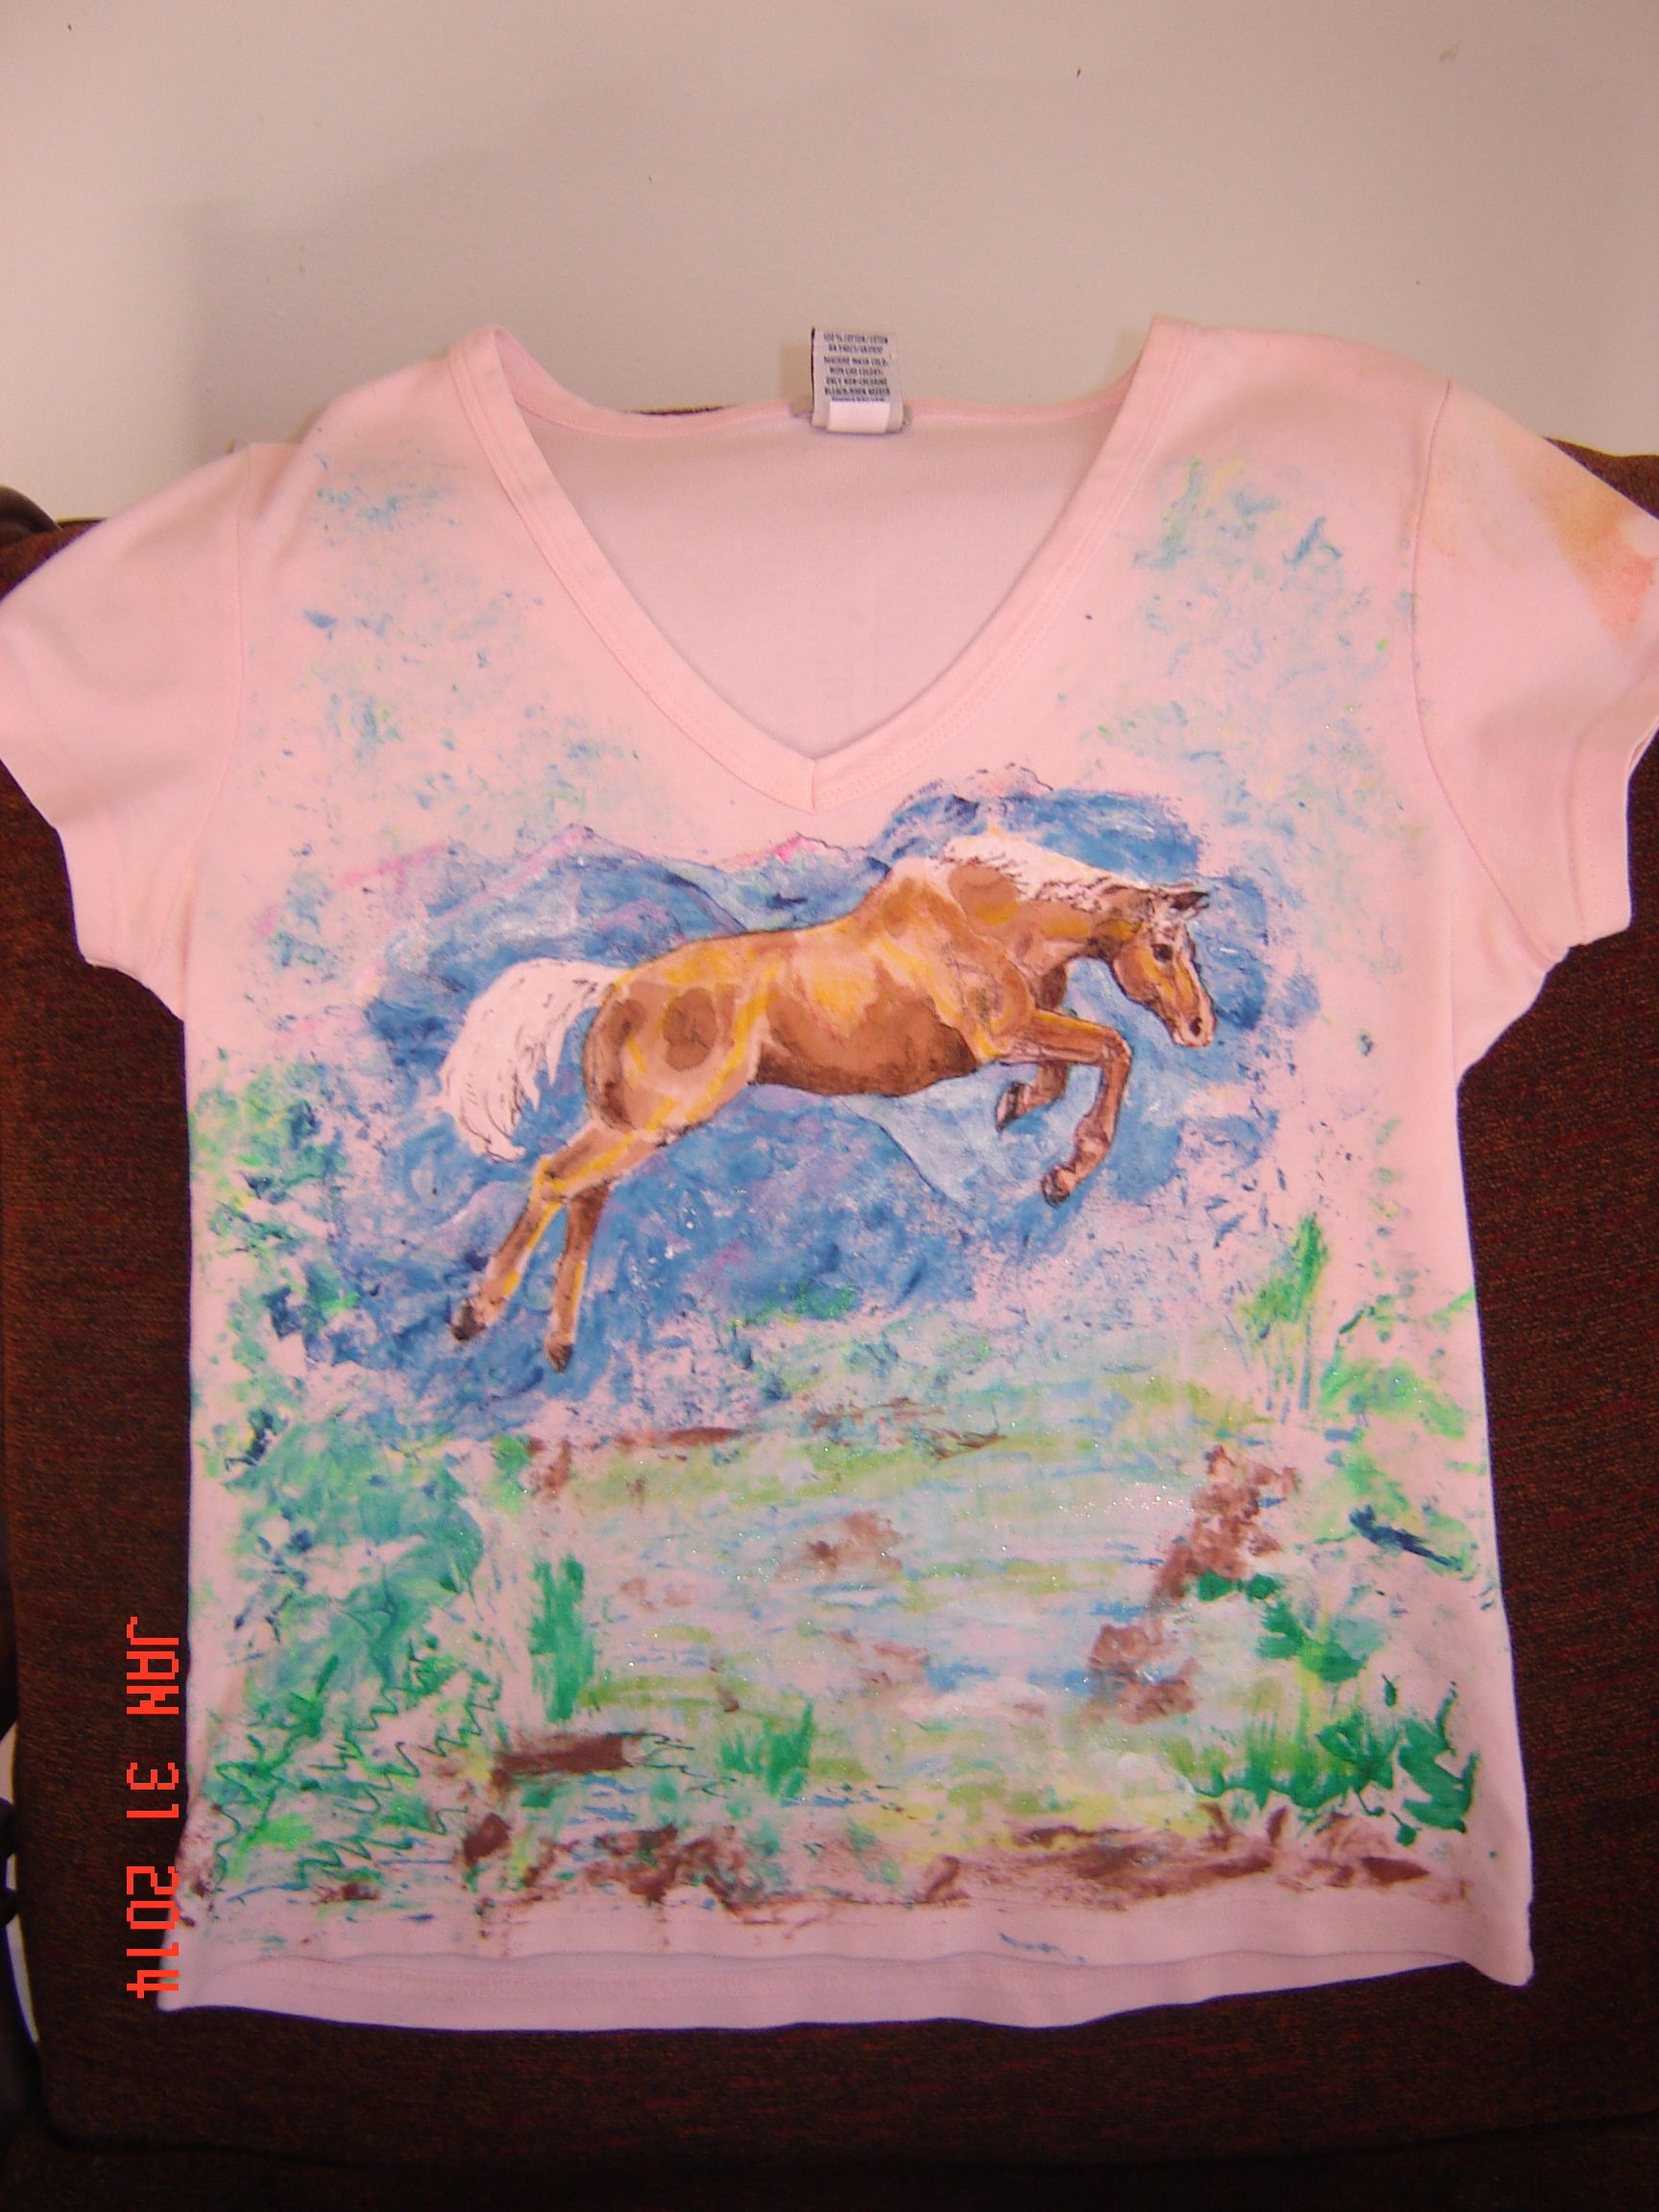 Free Ink Pens Fabric Paint Free Hand Horse With Ink Pens But The Horse Faded